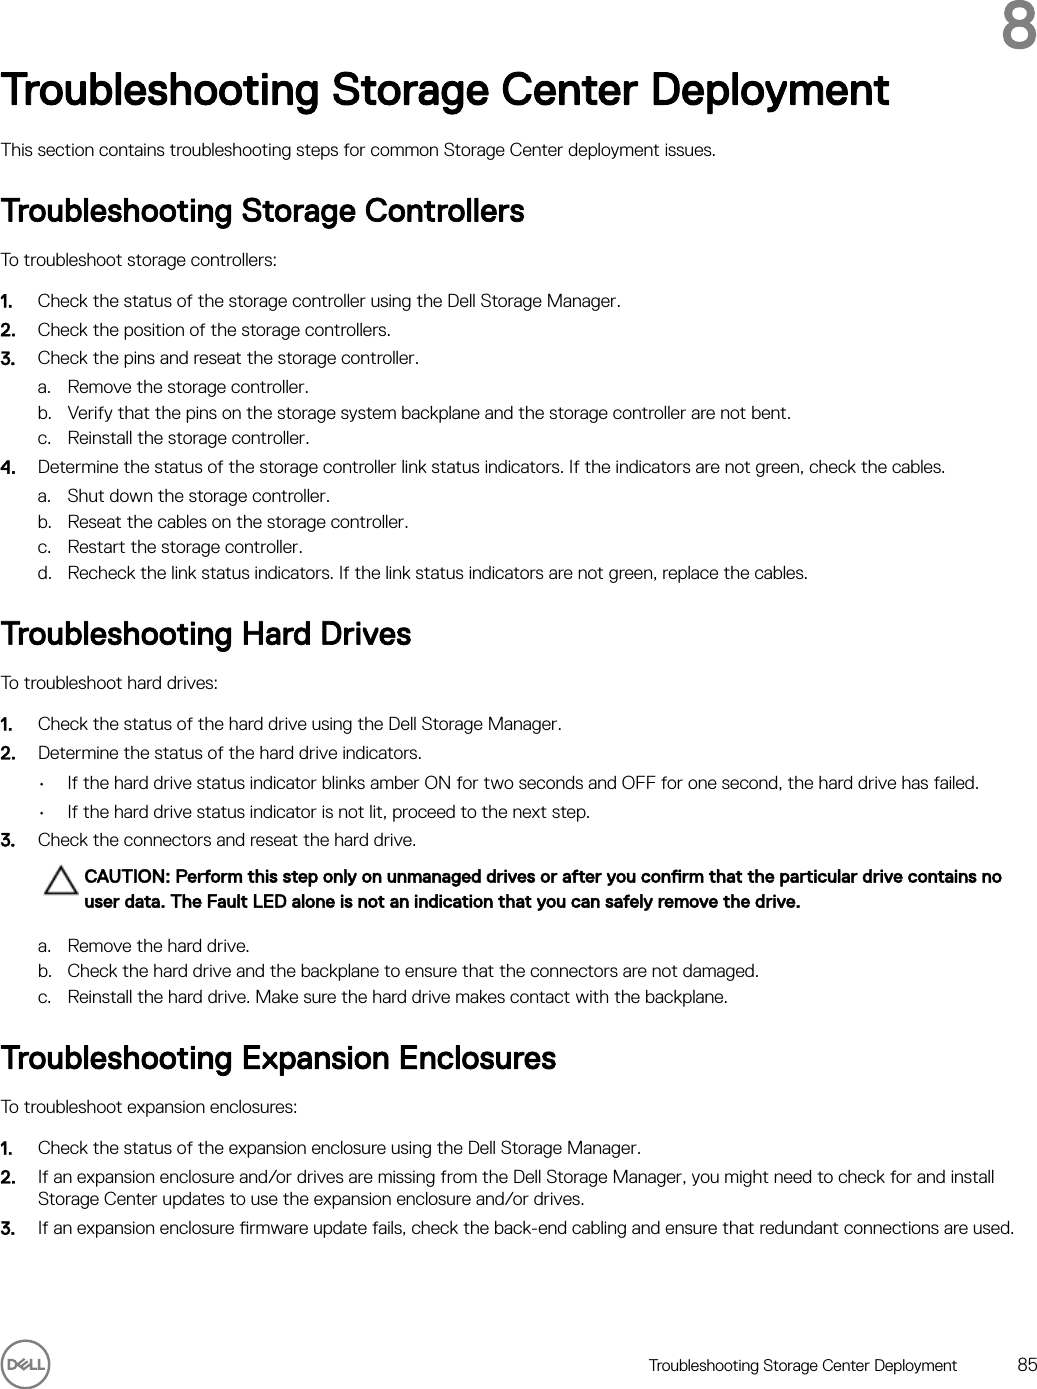 Dell Storage scv3000 And SCv3020 System Deployment Guide User Manual